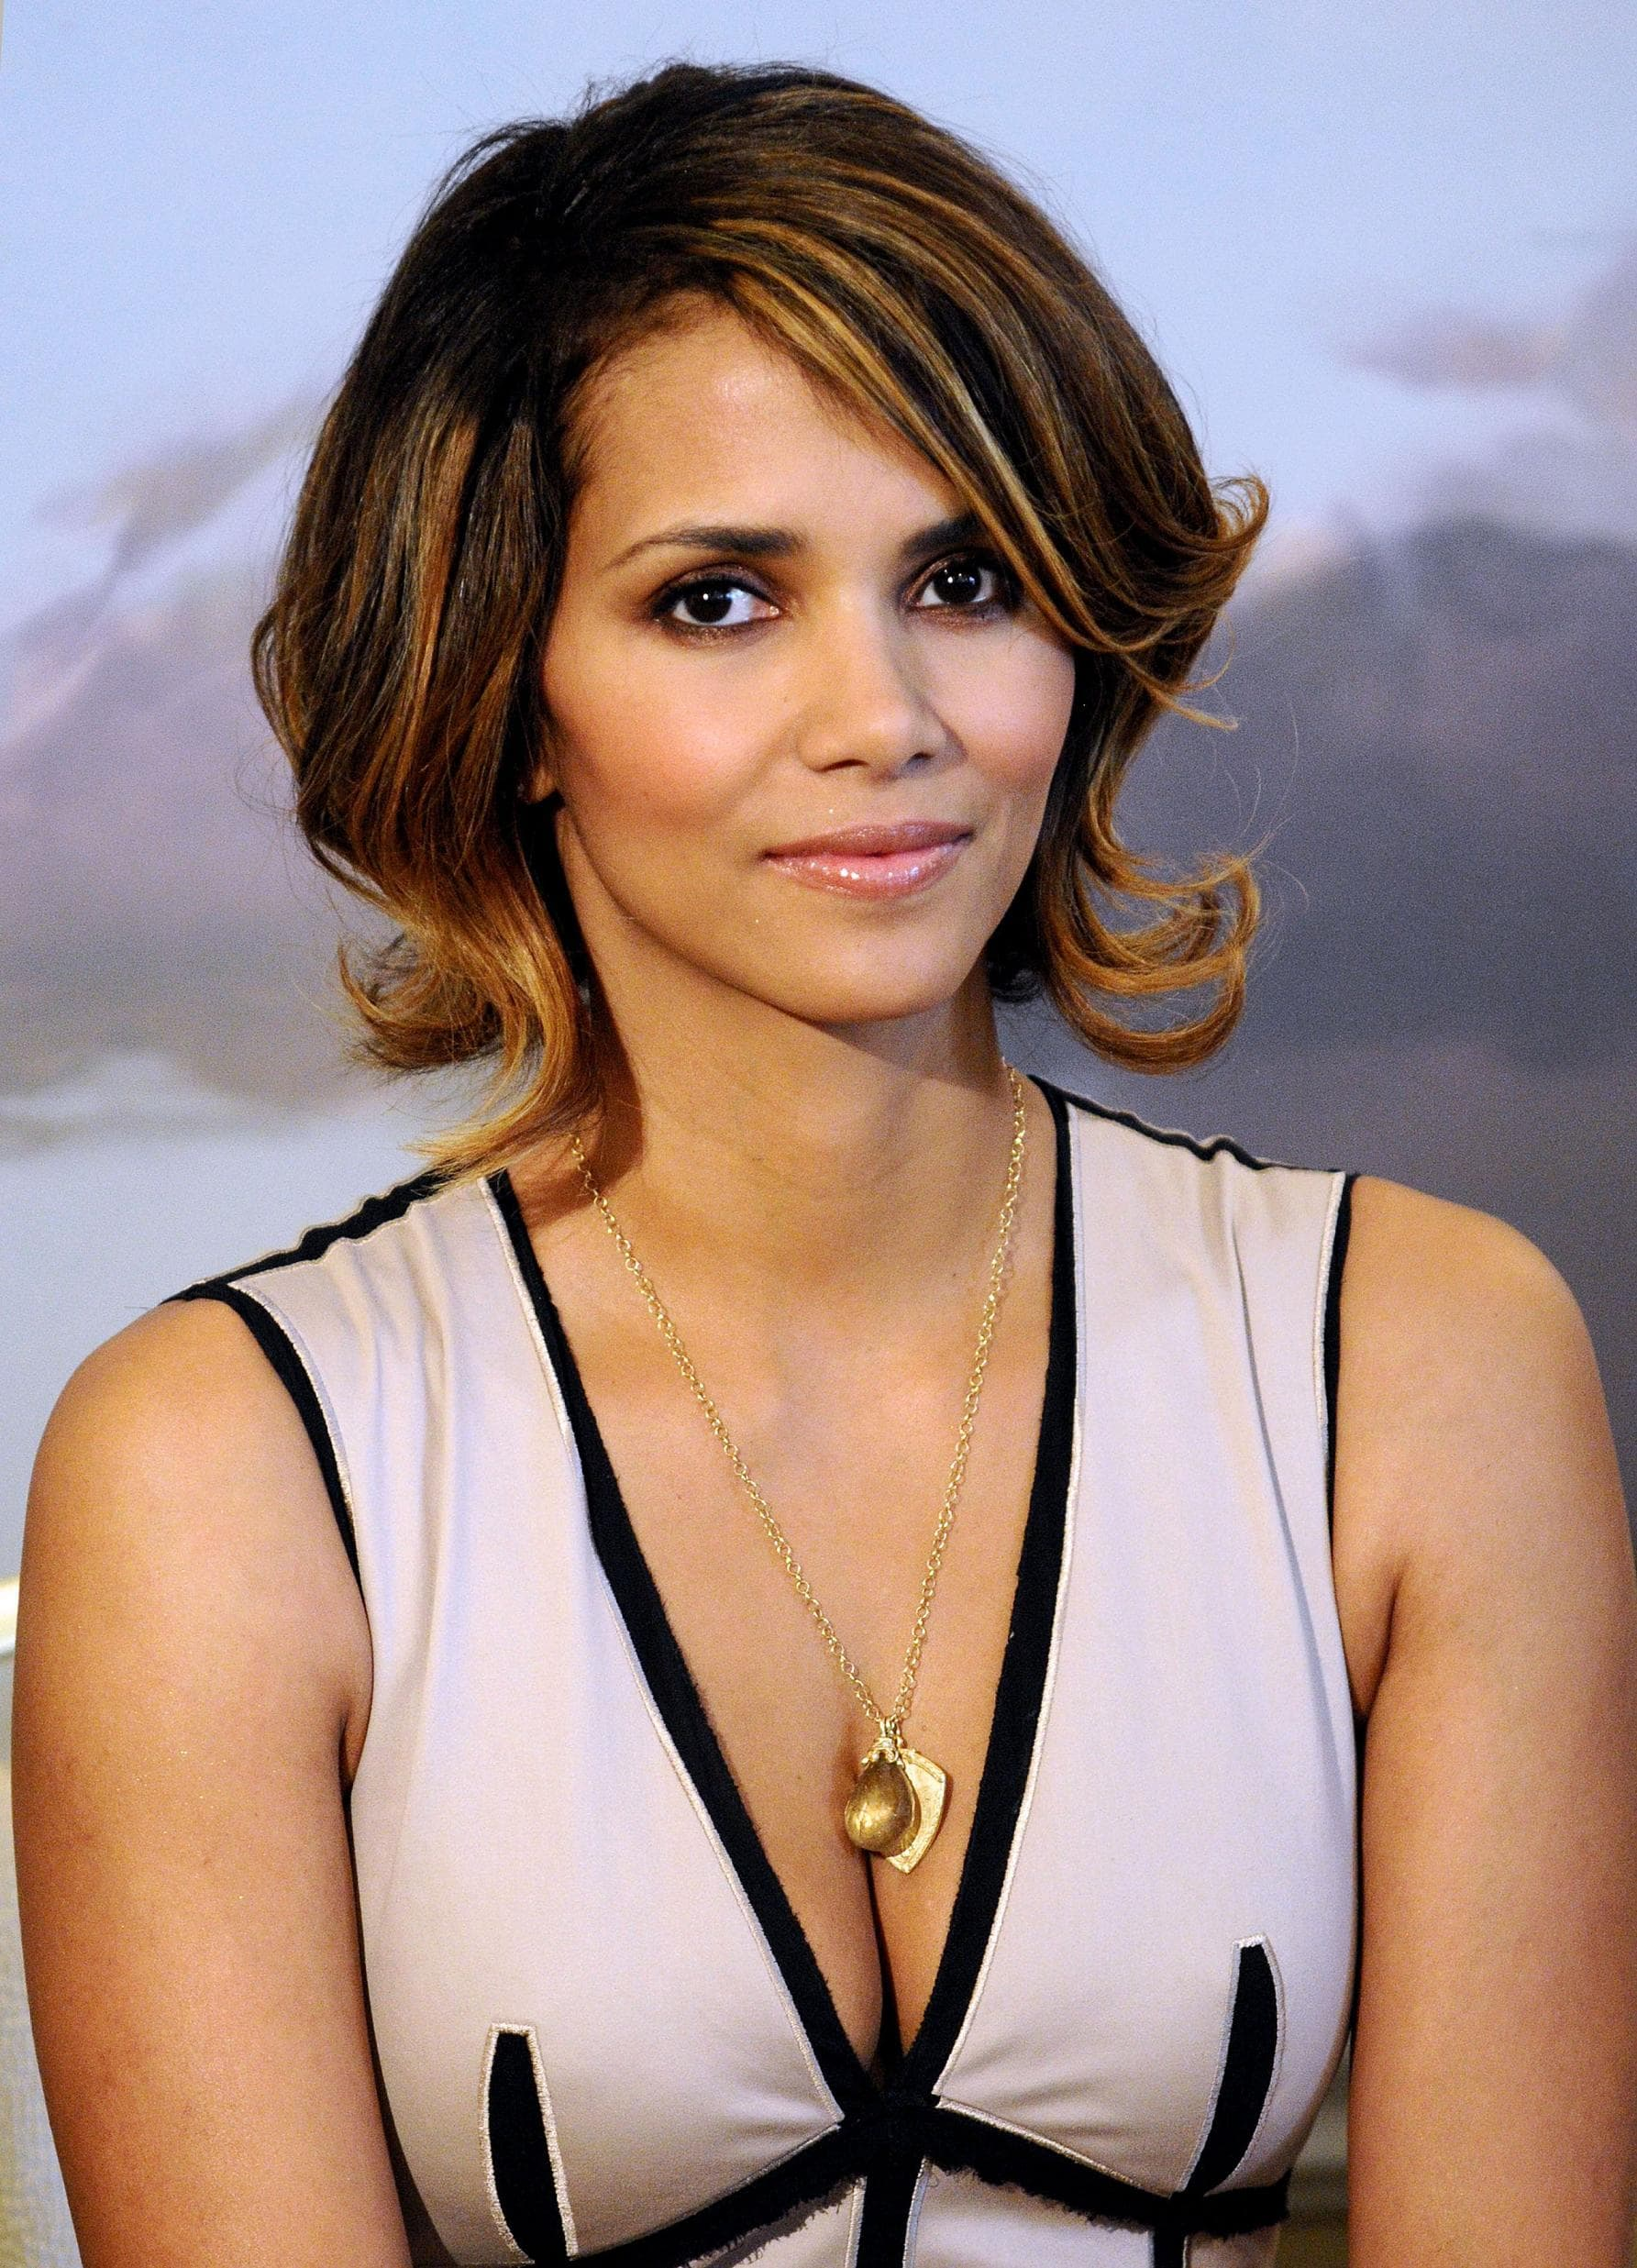 Halle Berry HQ wallpapers